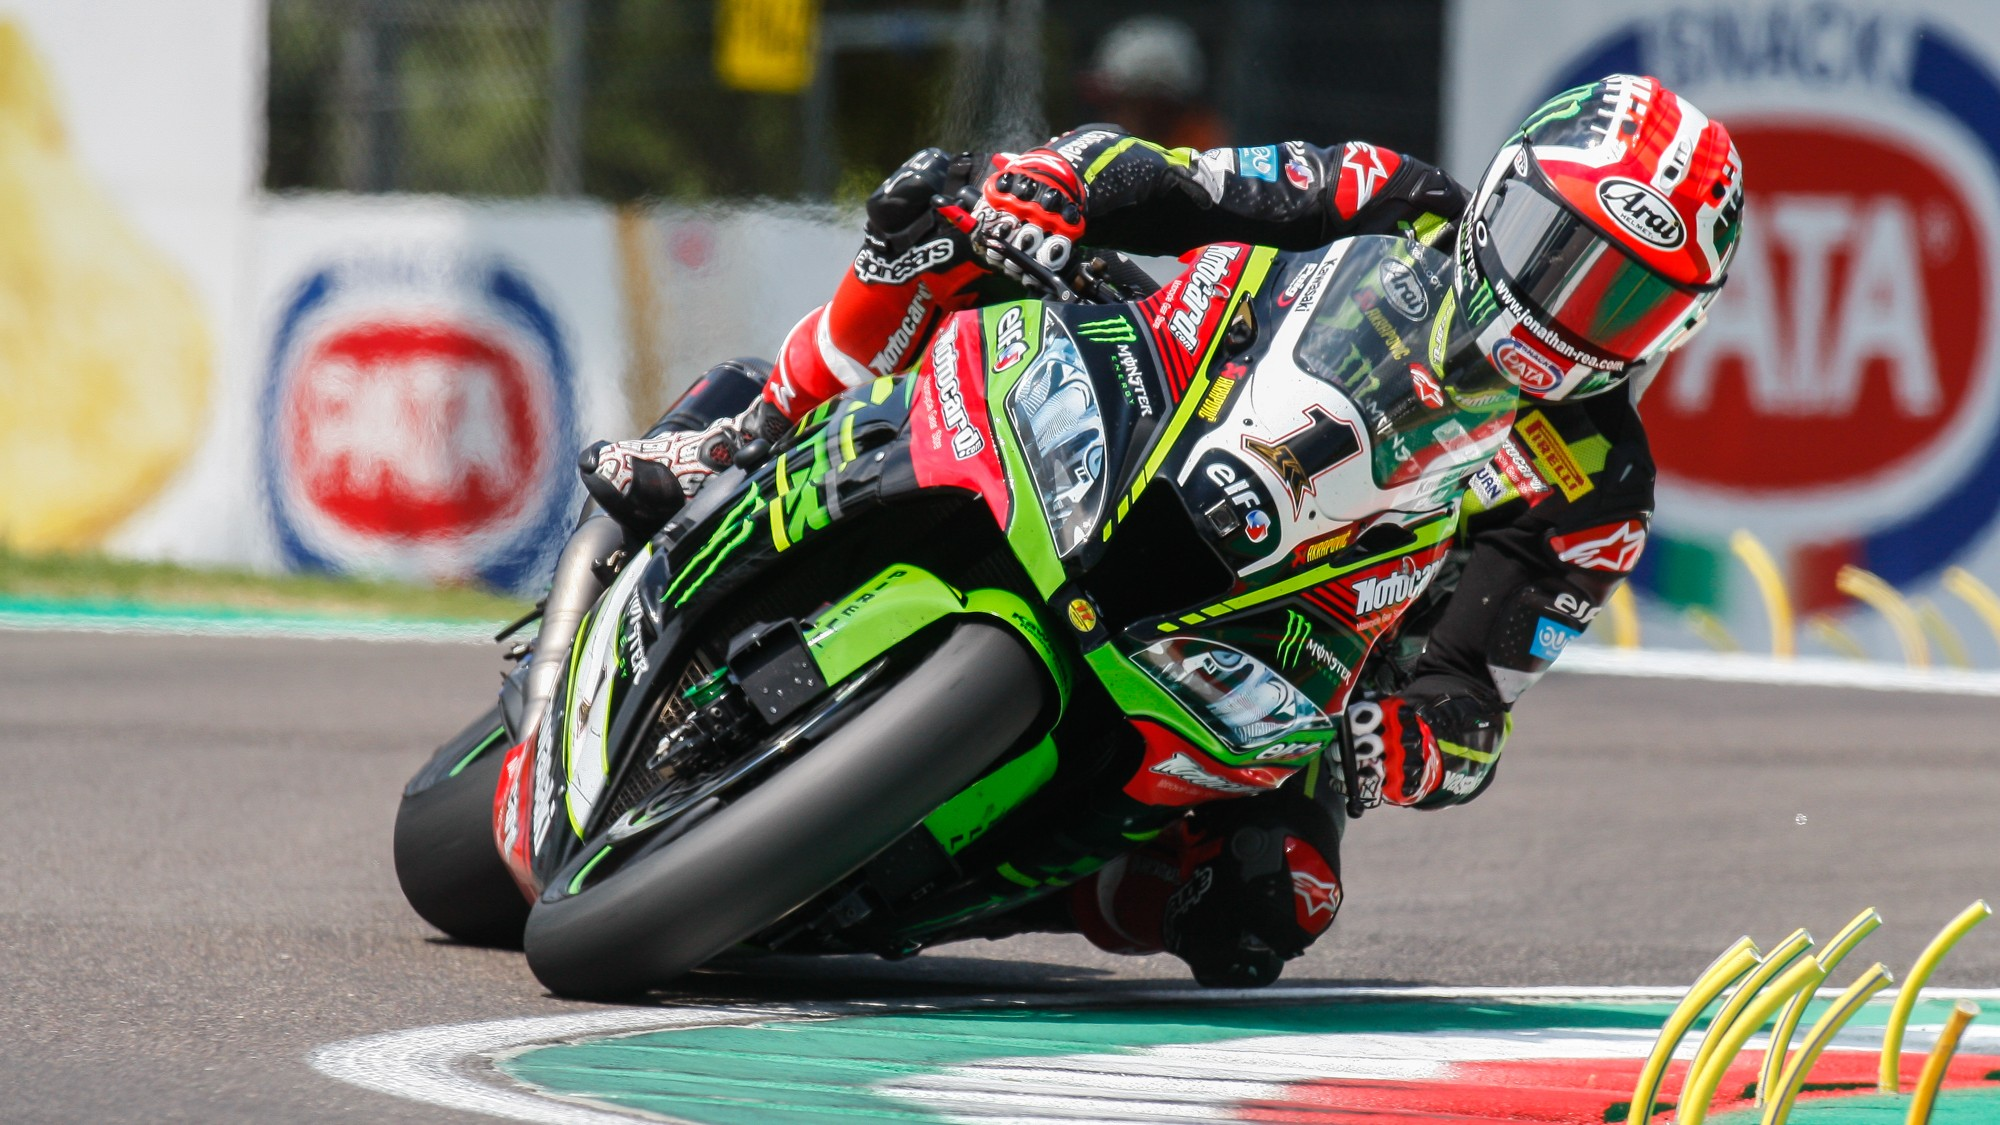 SBK Imola – Rea does the double and increases championship lead